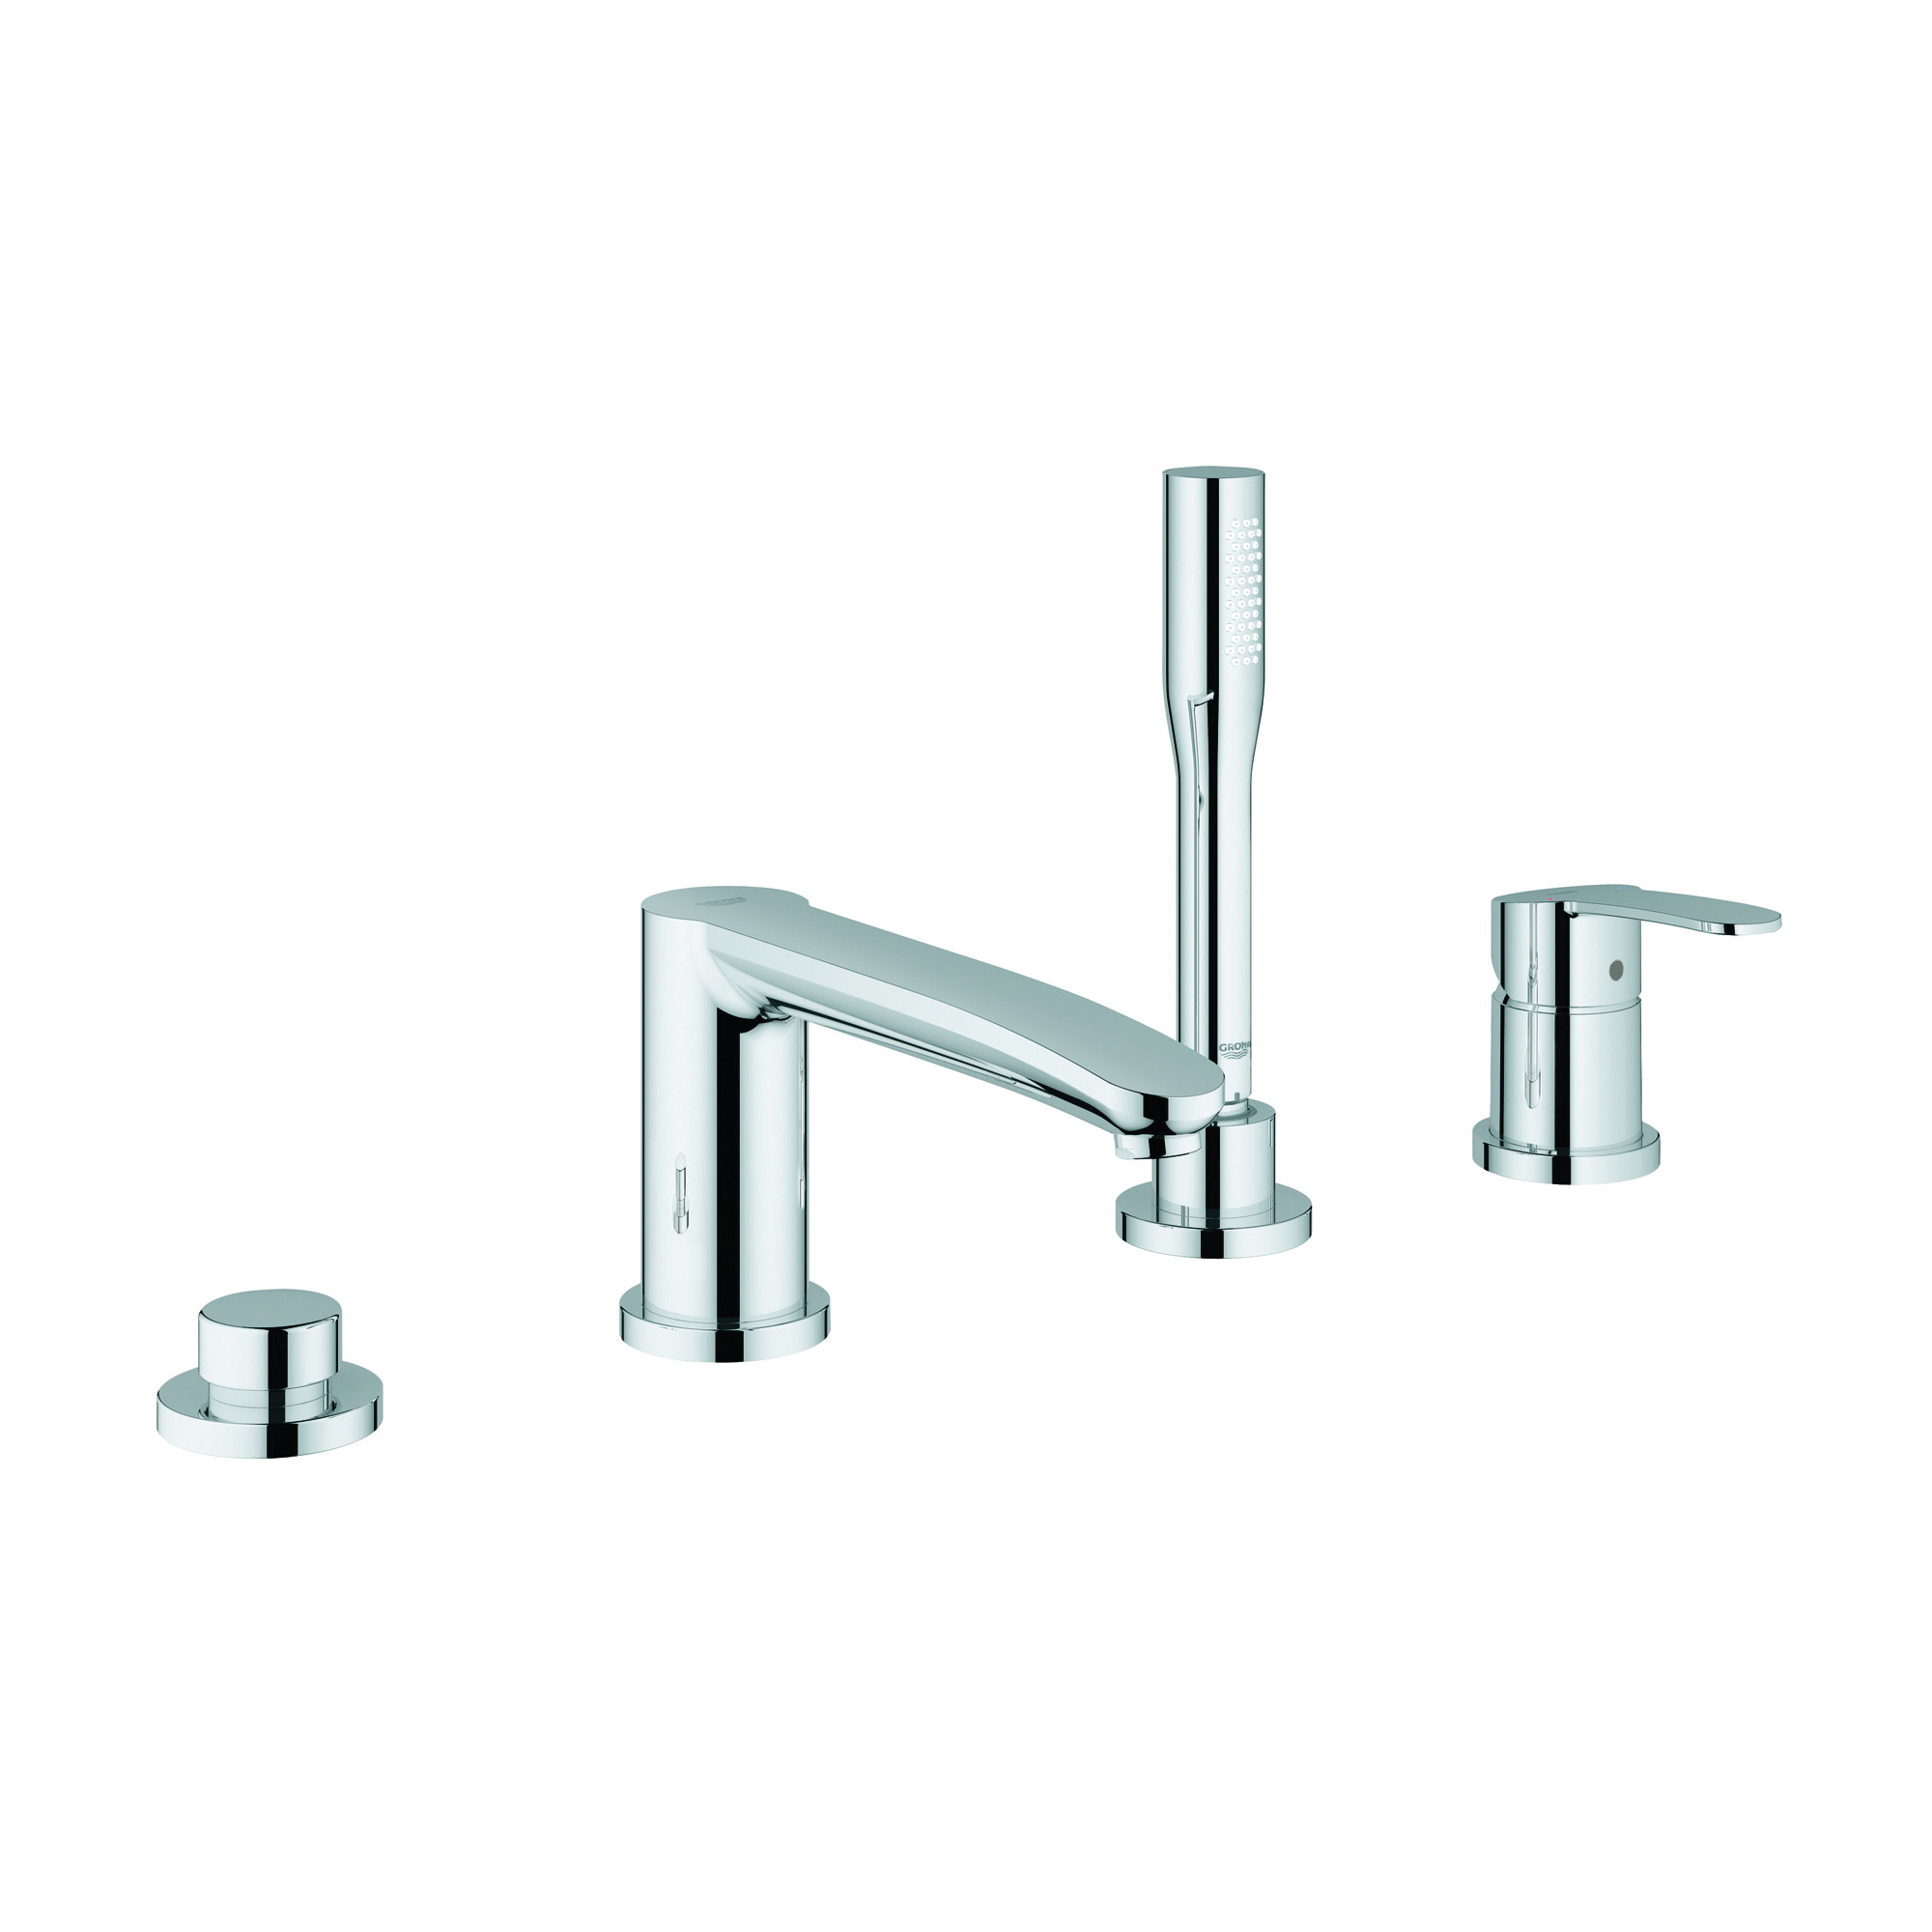 GROHE 23048002 Eurostyle™ Cosmopolitan Bath Combination, 8.1 gpm, StarLight® Chrome Plated, 1 Handles, Hand Shower Yes/No: Yes, Import